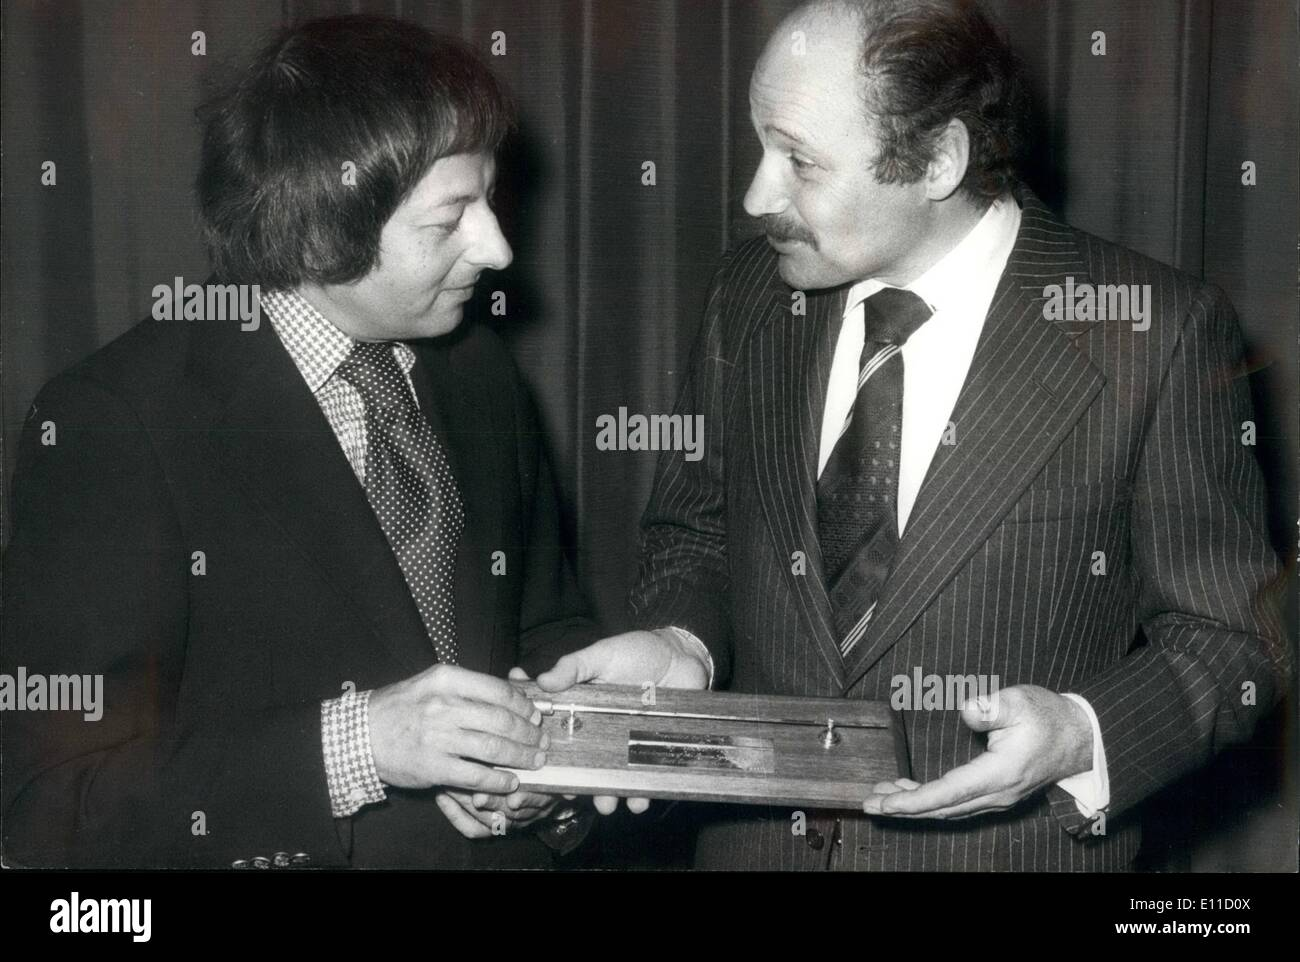 Apr. 04, 1977 - Andre Previn Presented With A Baton During Press Conference Of The London Symphony Orchestra: During a press conference at the Waldorf Hotel today to announce the future plans for the tour of the London Symphony Orchestra's East European visit to Germany Hungary, Czechoslovakia, Yugoslavia, Austria and Switzerland From May 3rd to the 27th. Principal Conductor, Andre Previn was presented with a baton by Ralph Lands, the field operations Manager for Eastern Europe for Rank Xerox, who are the sponsors of the tour - Stock Image